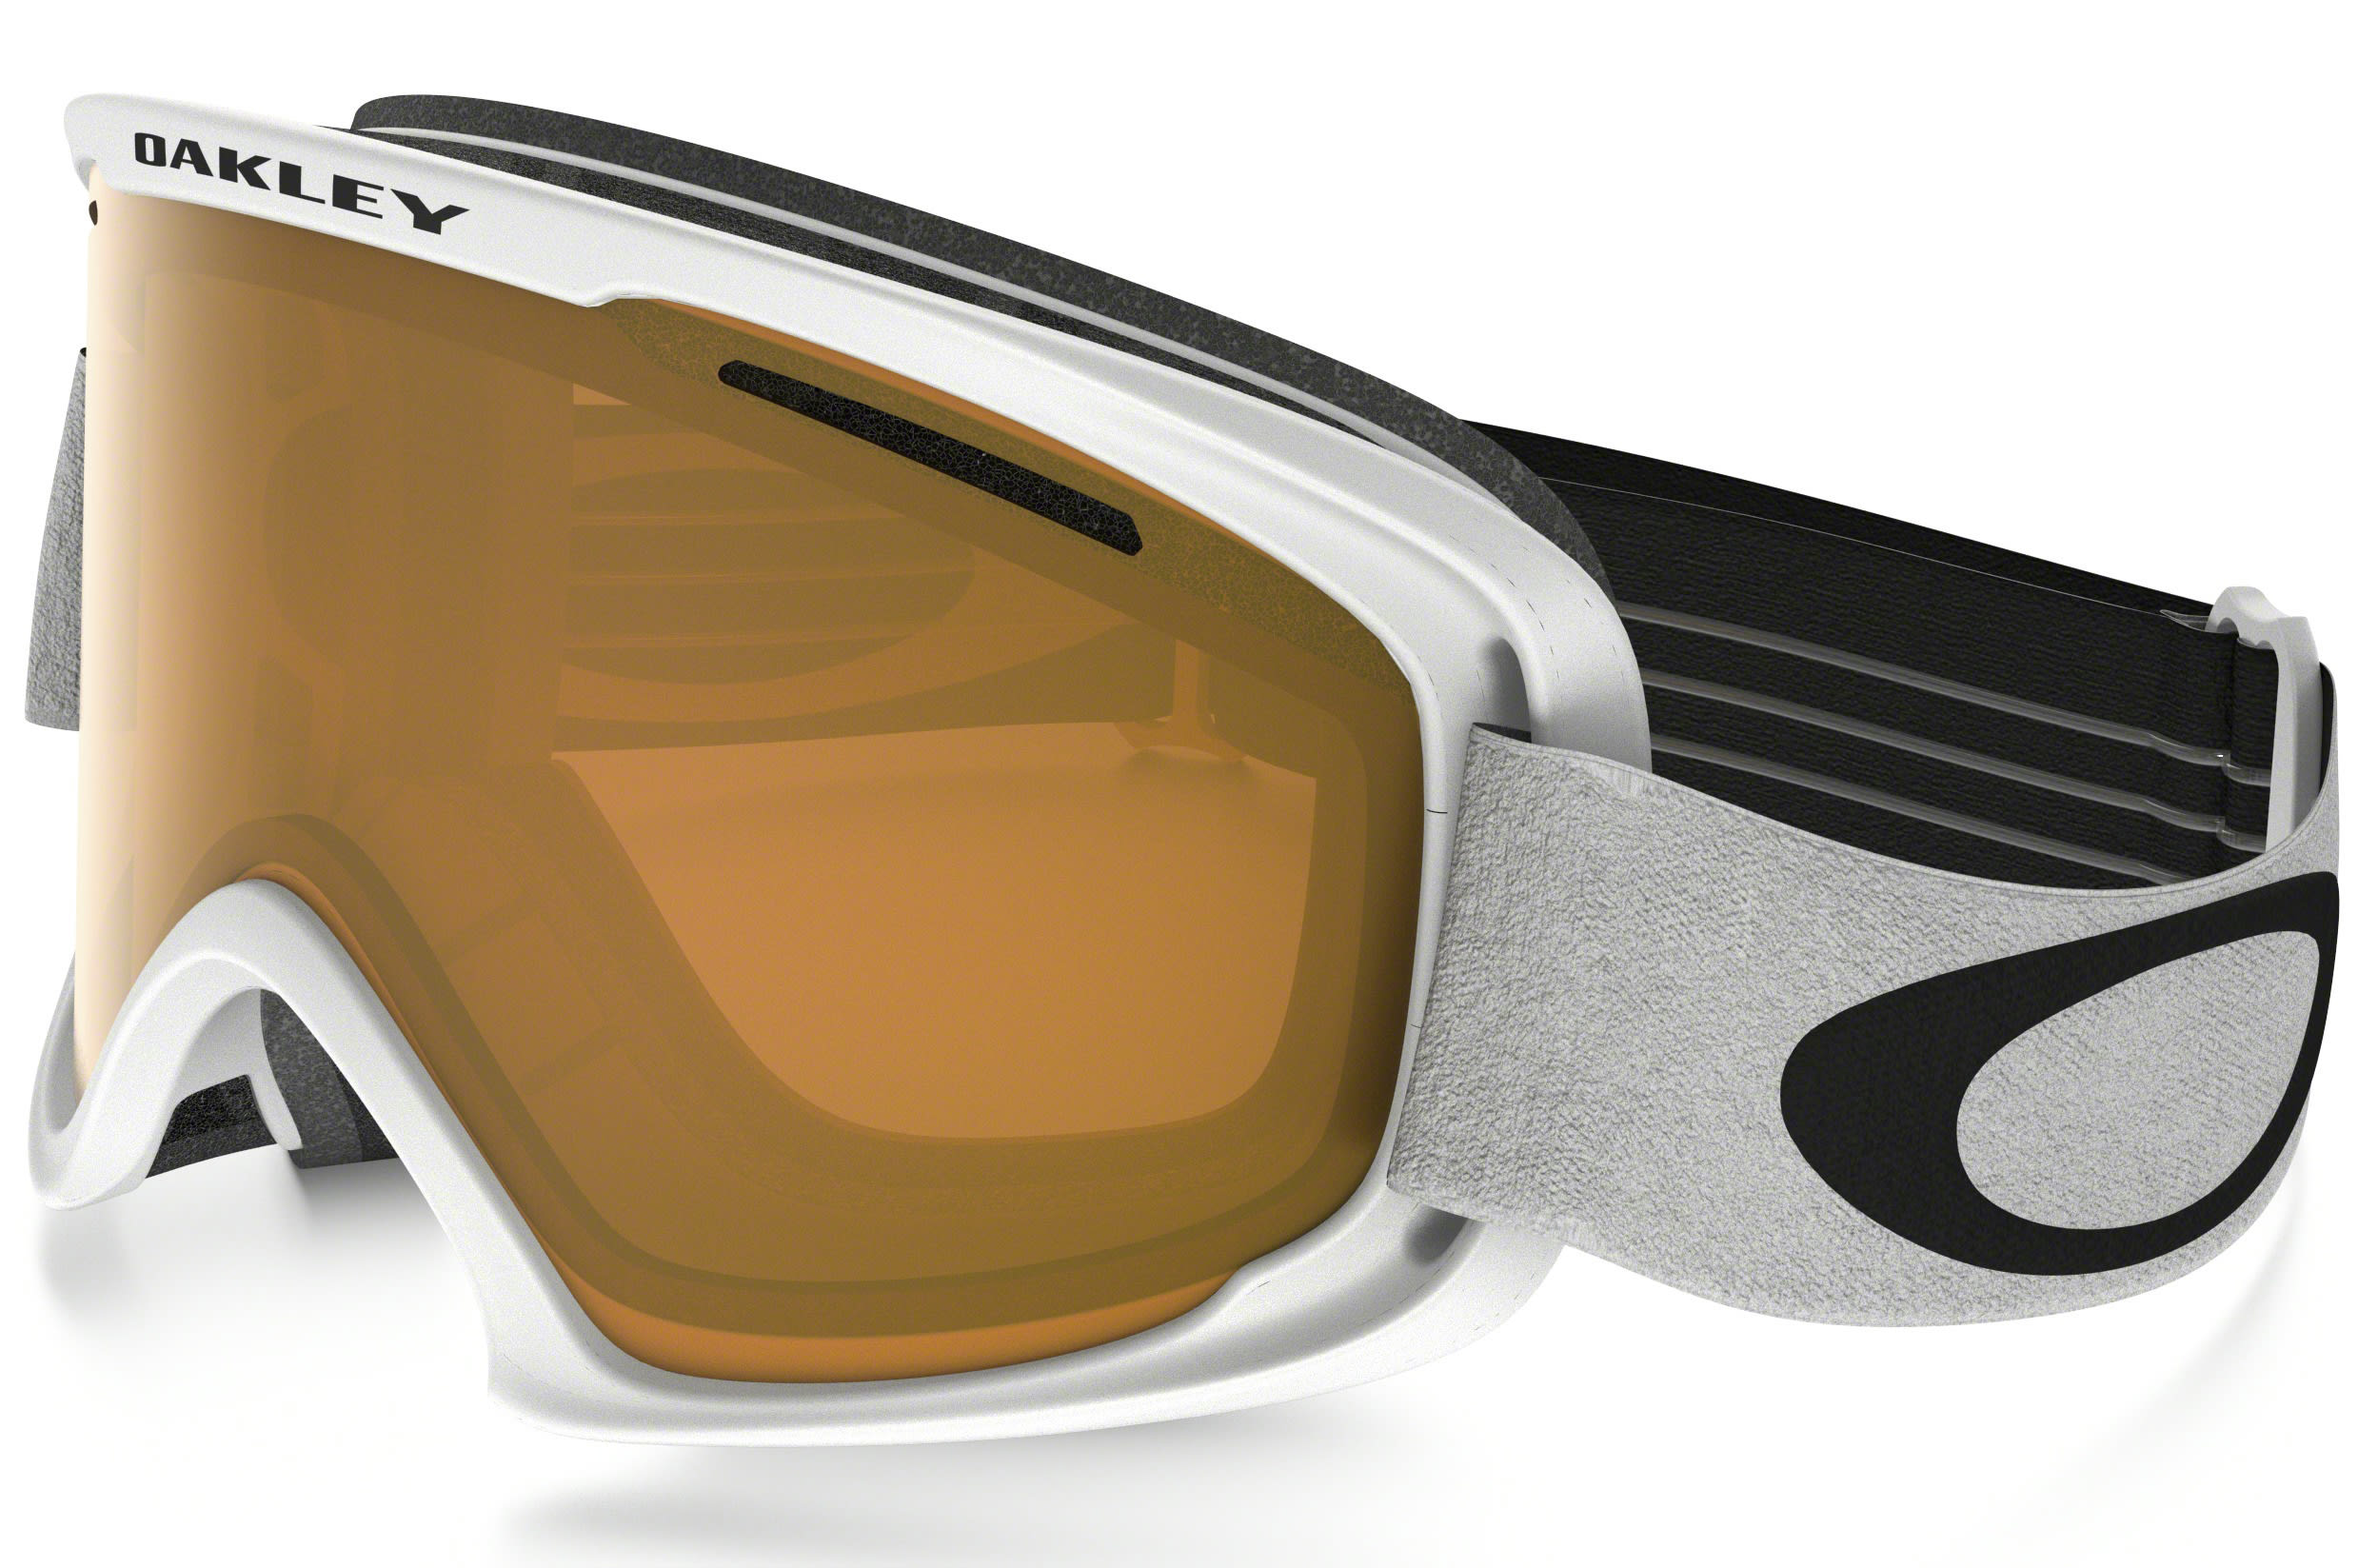 e0e217f39ae13 Oakley O Frame 2.0 XL (Asian Fit) Goggles - thumbnail 1